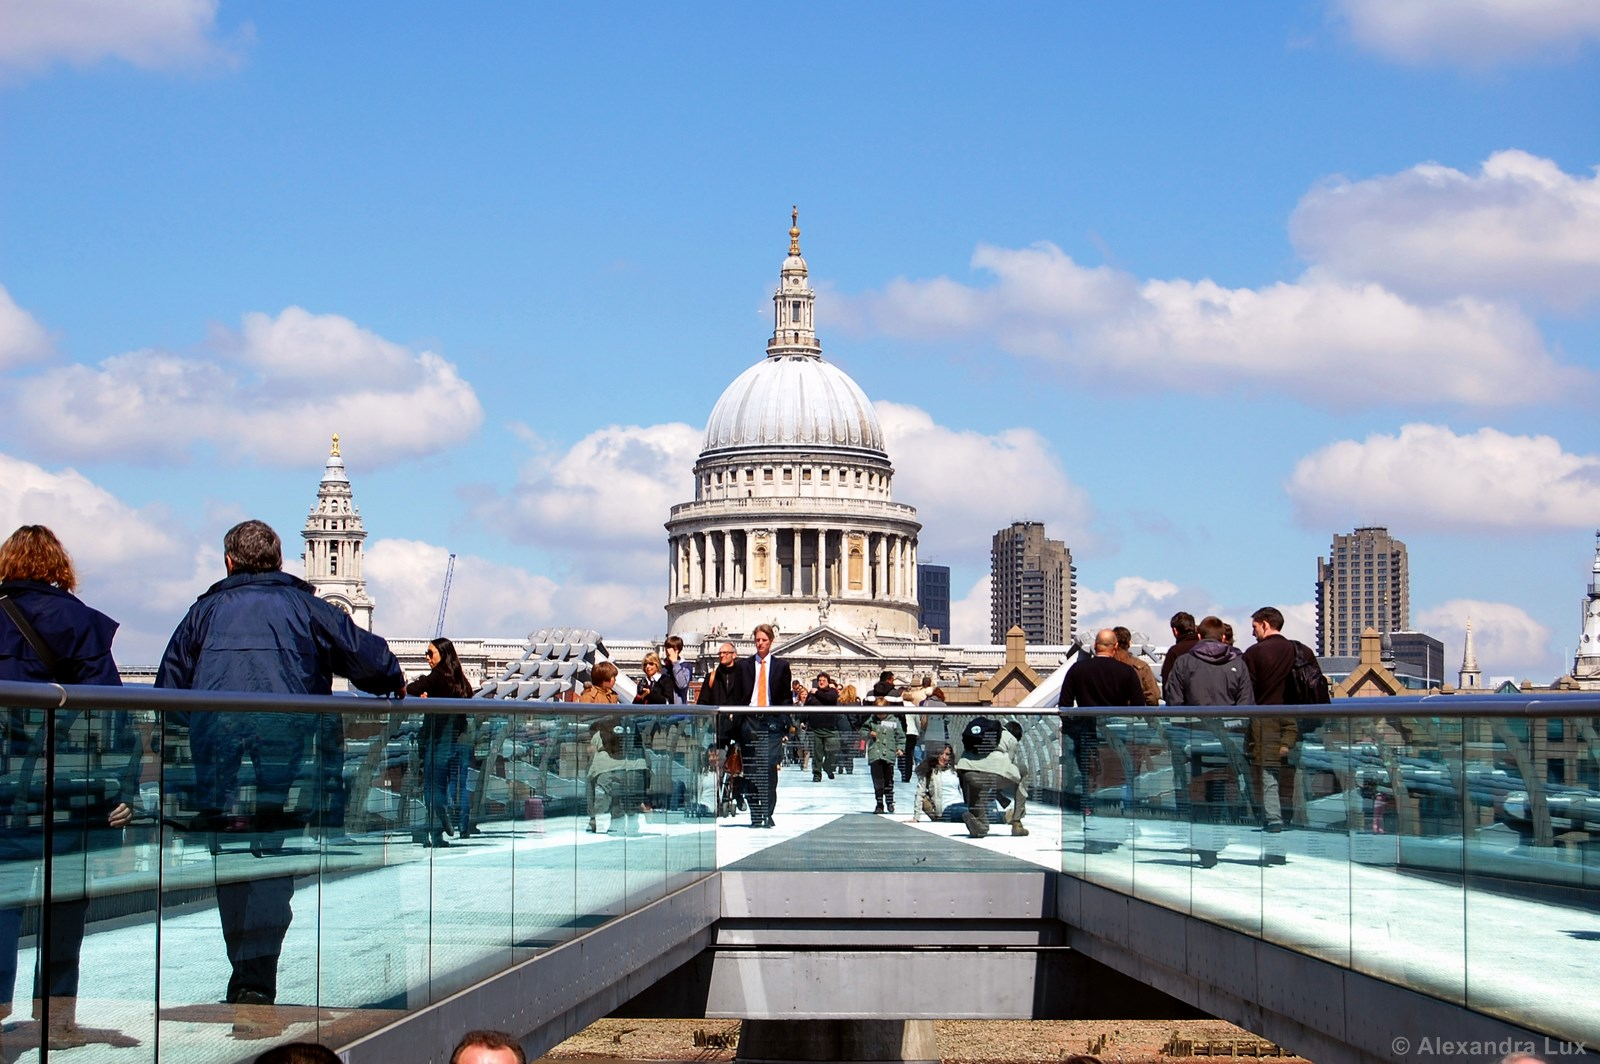 milleniumbridge zu st. paul's cathedral